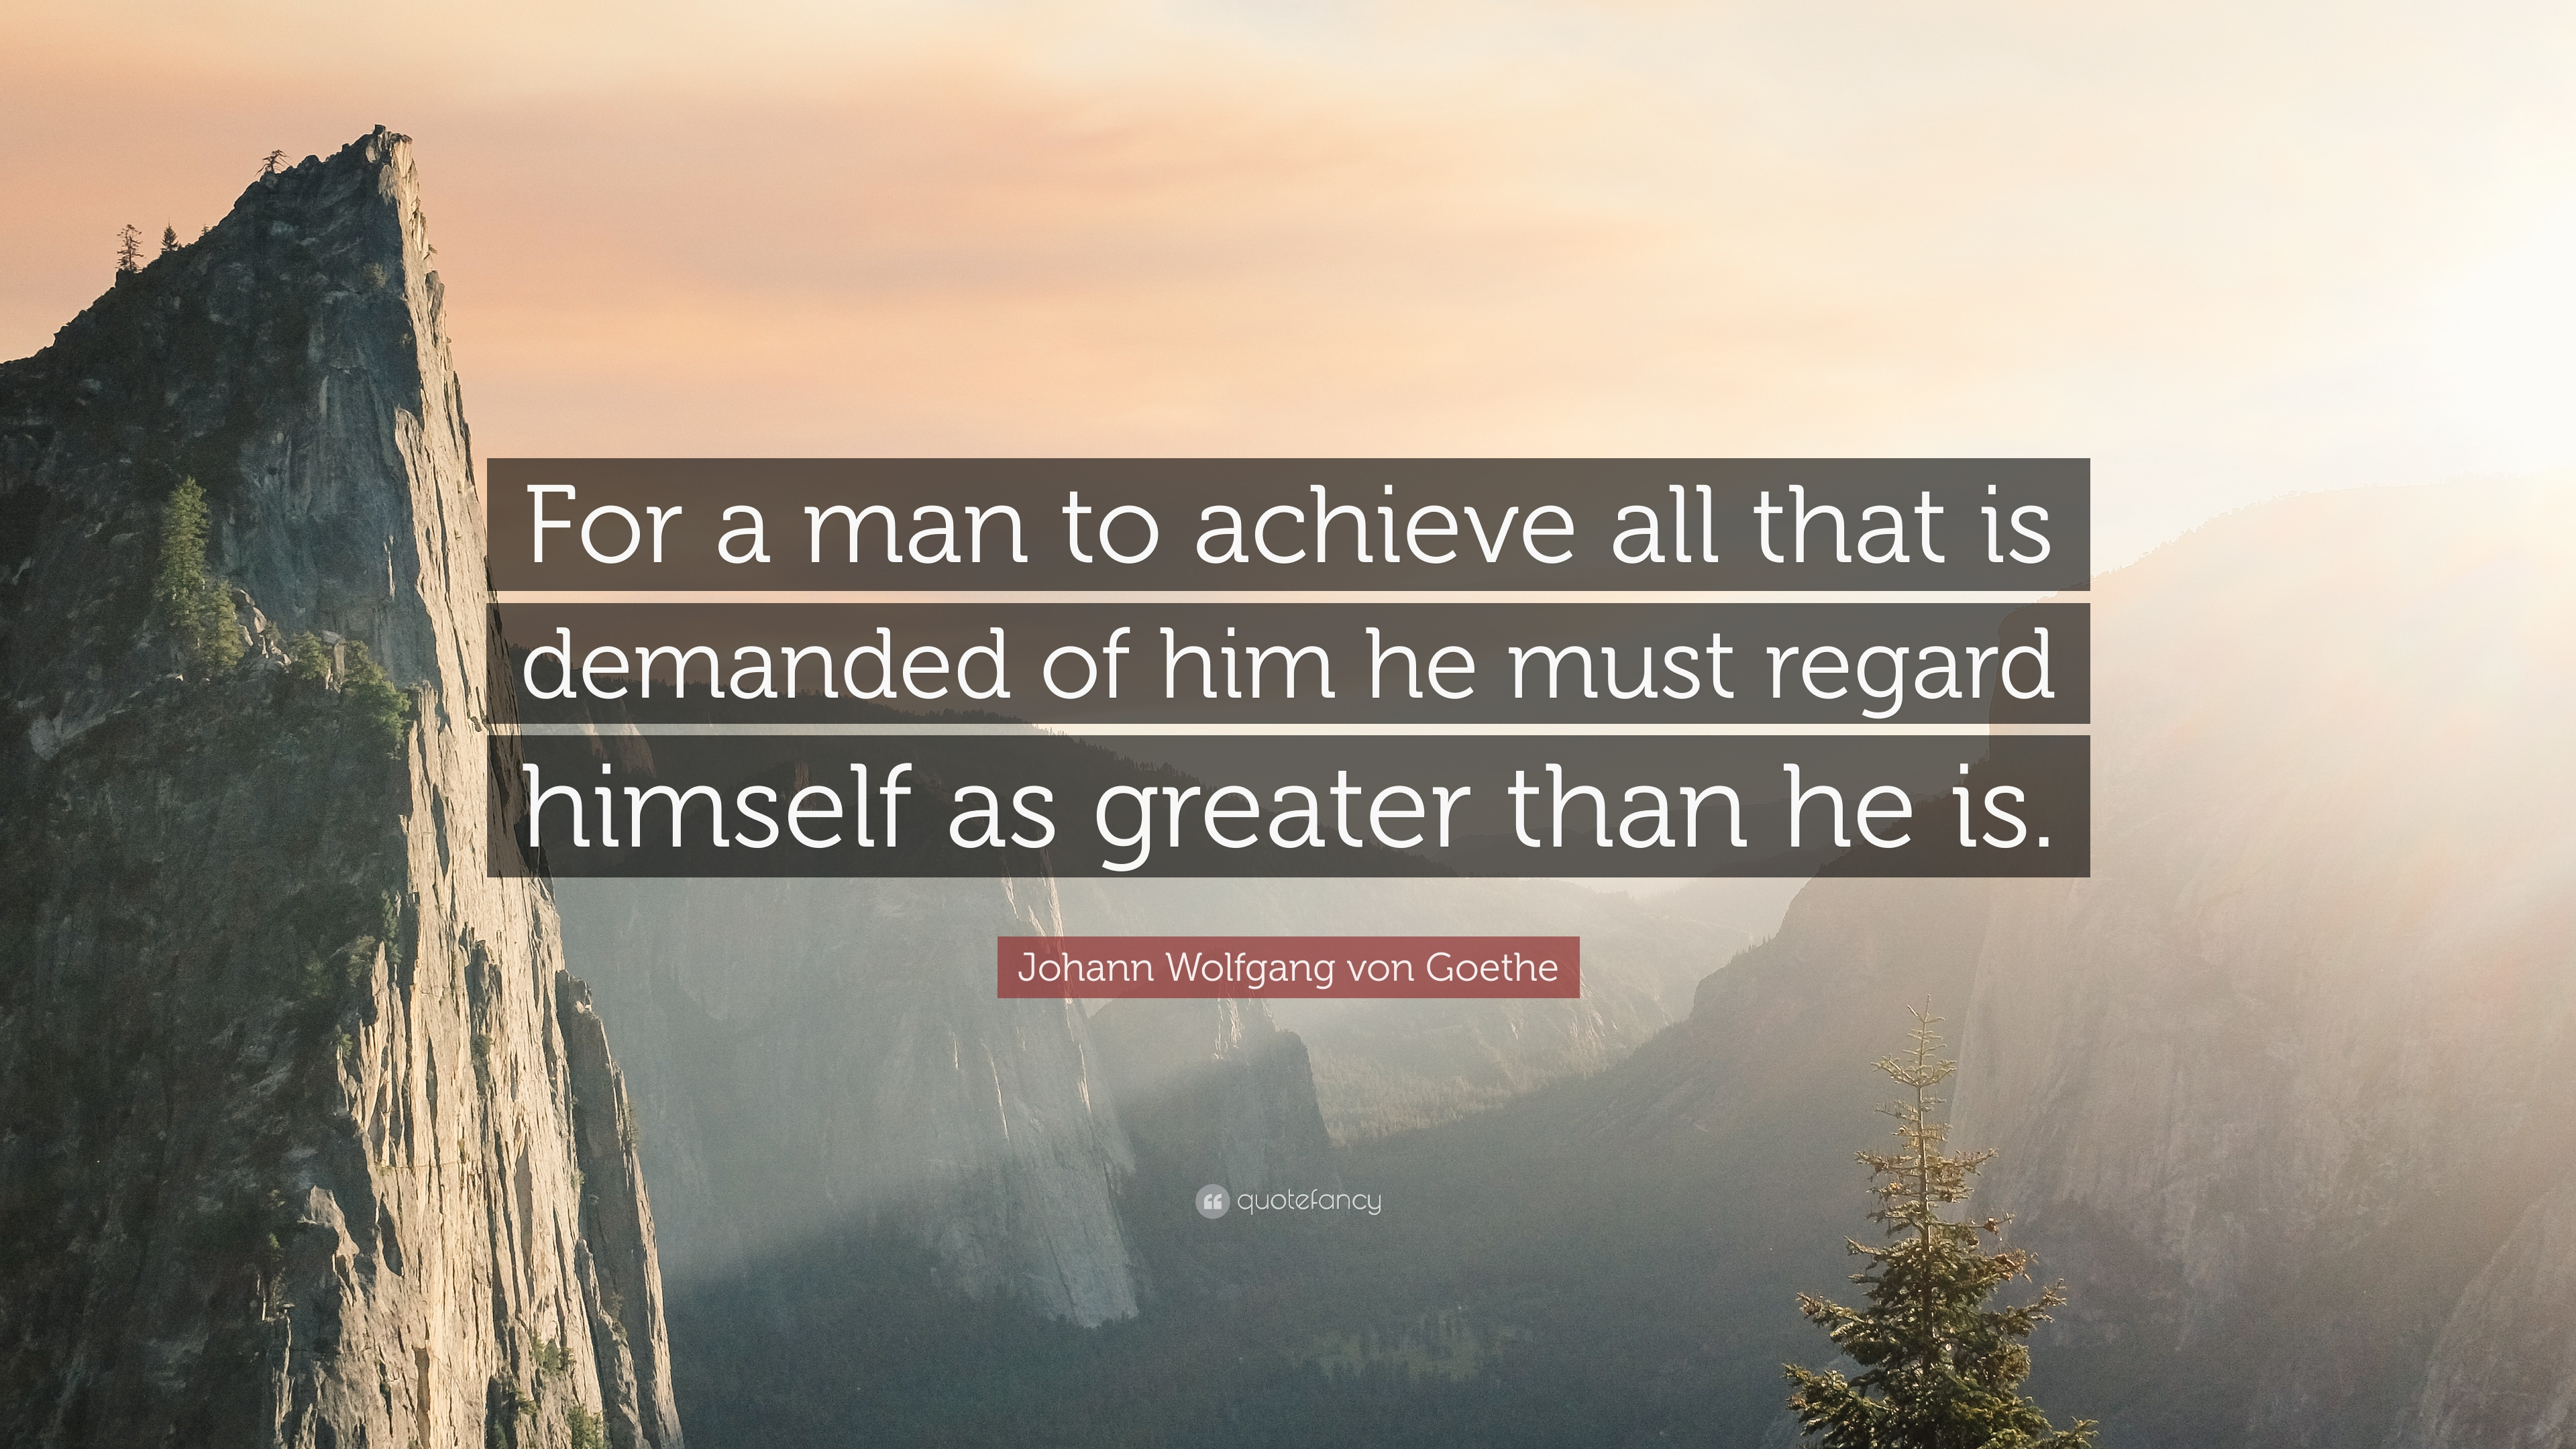 How to achieve a man